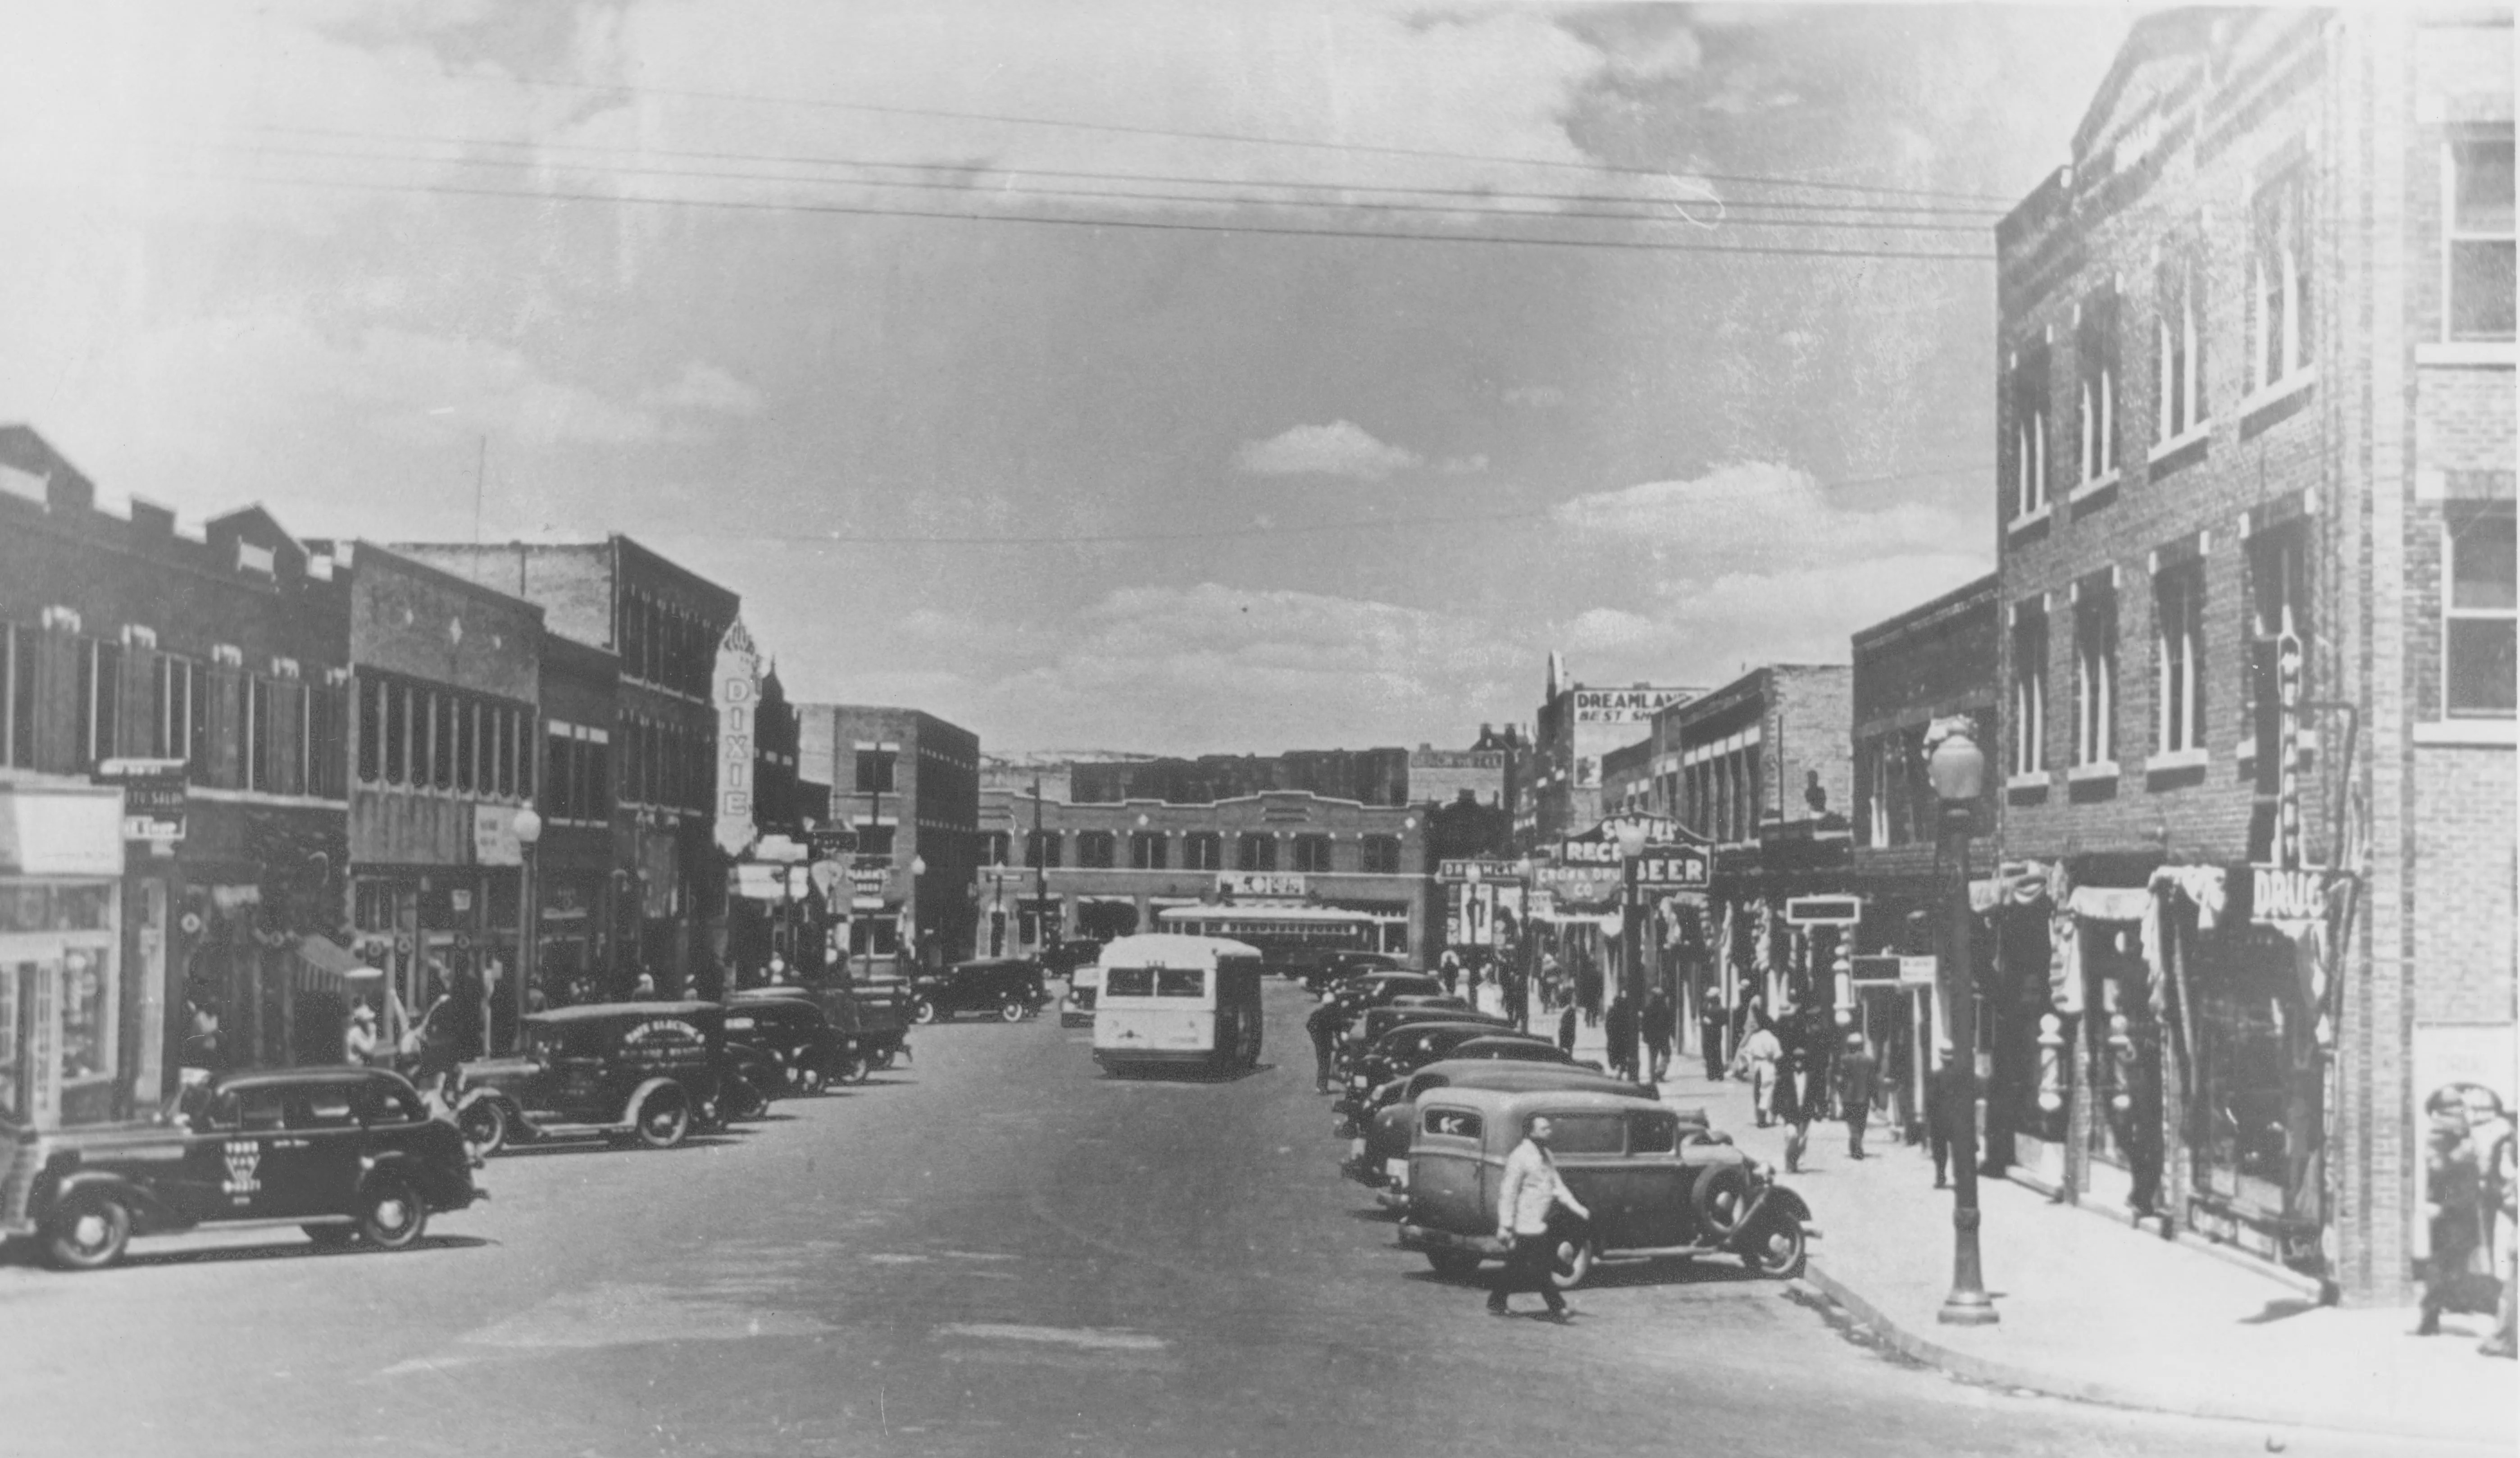 Some of the buildings still standing along Greenwood Avenue are shown in this 1938 photo. The area historically referred to as Black Wall Street was rebuilt in the five years following the 1921 massacre.